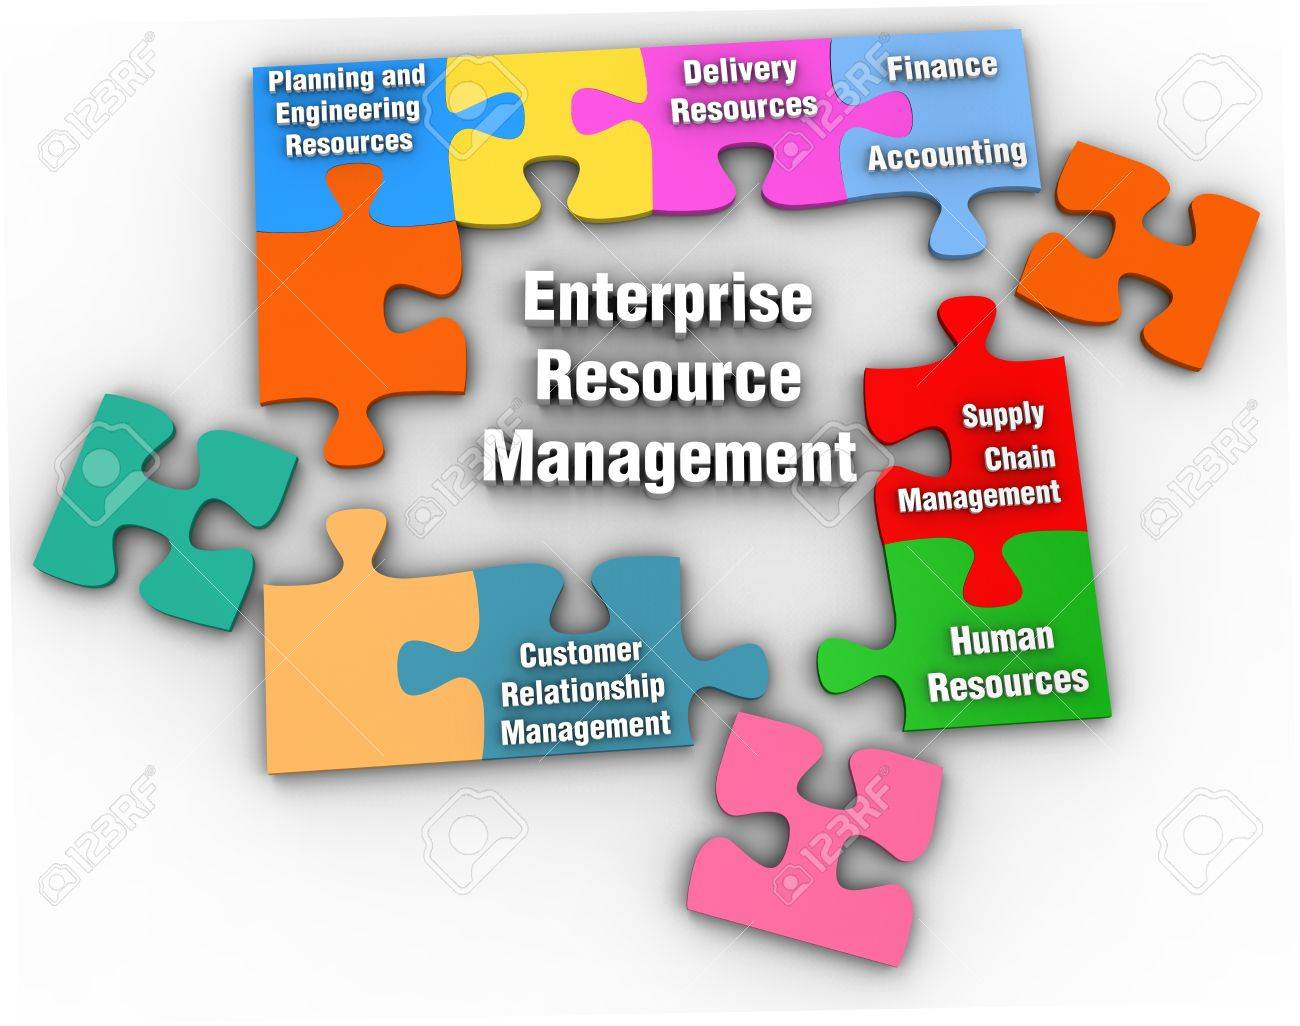 Latest technology in ERP software usage